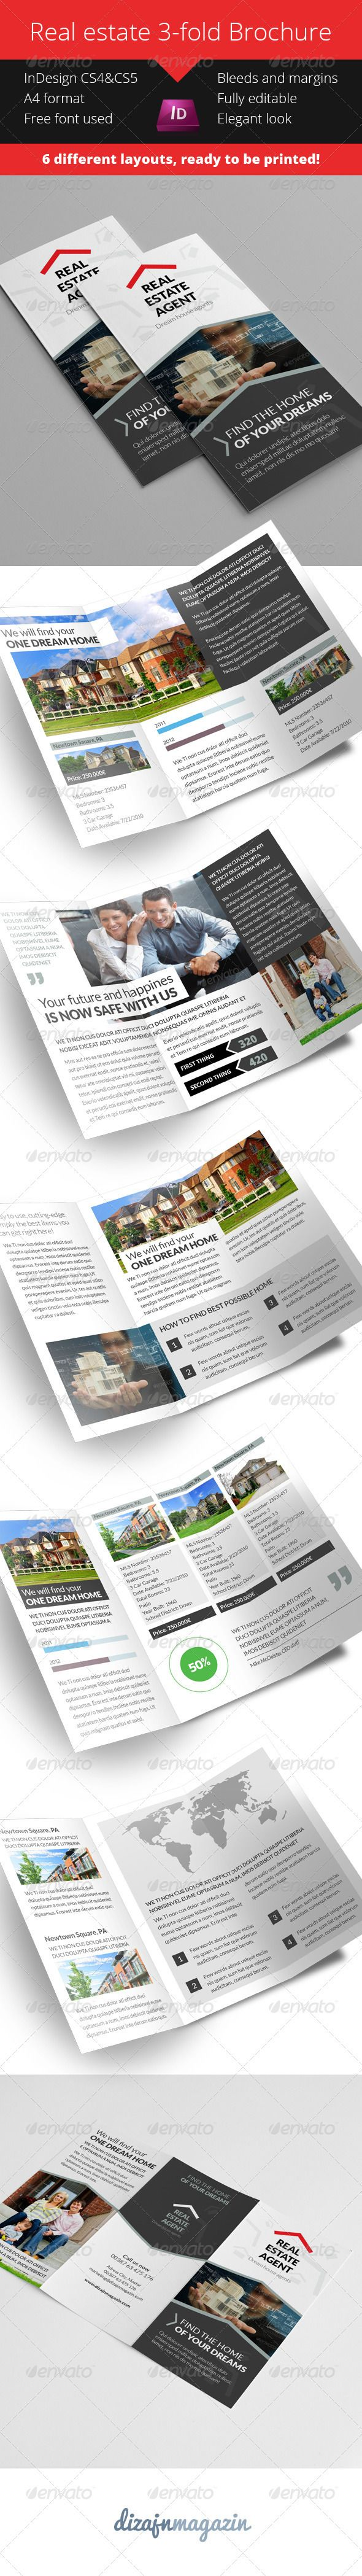 Real Estate 3 Fold Brochure - Product Catalog